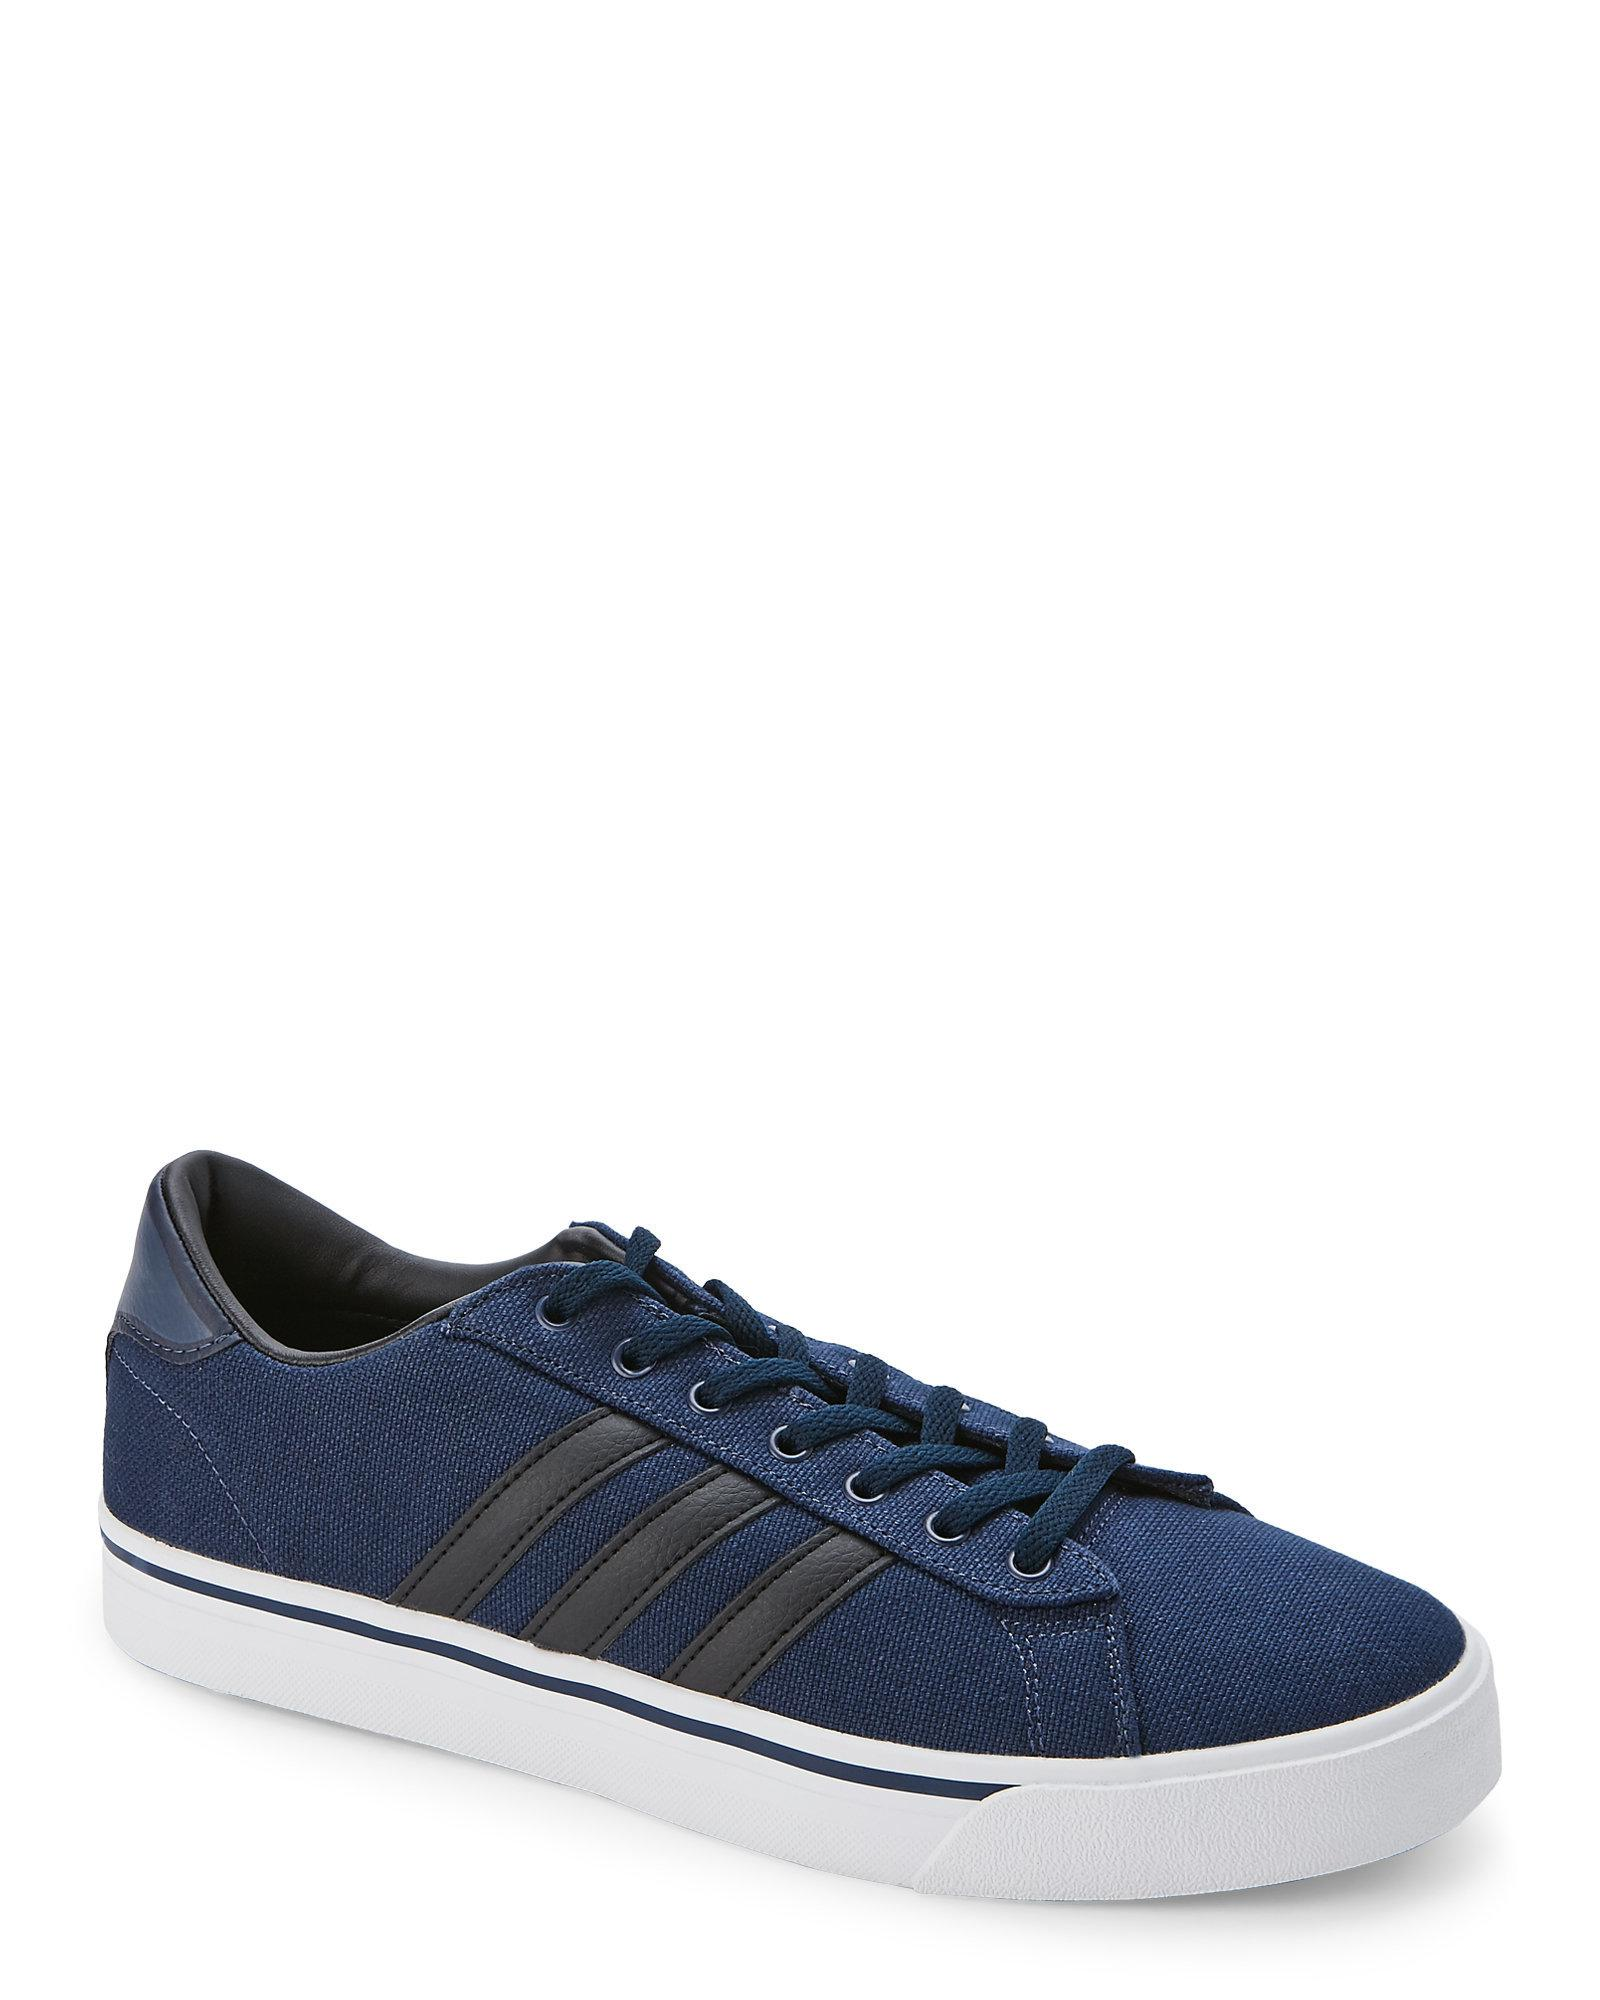 Adidas Neo CLOUDFOAM SUPER DAILY SneakersBlue